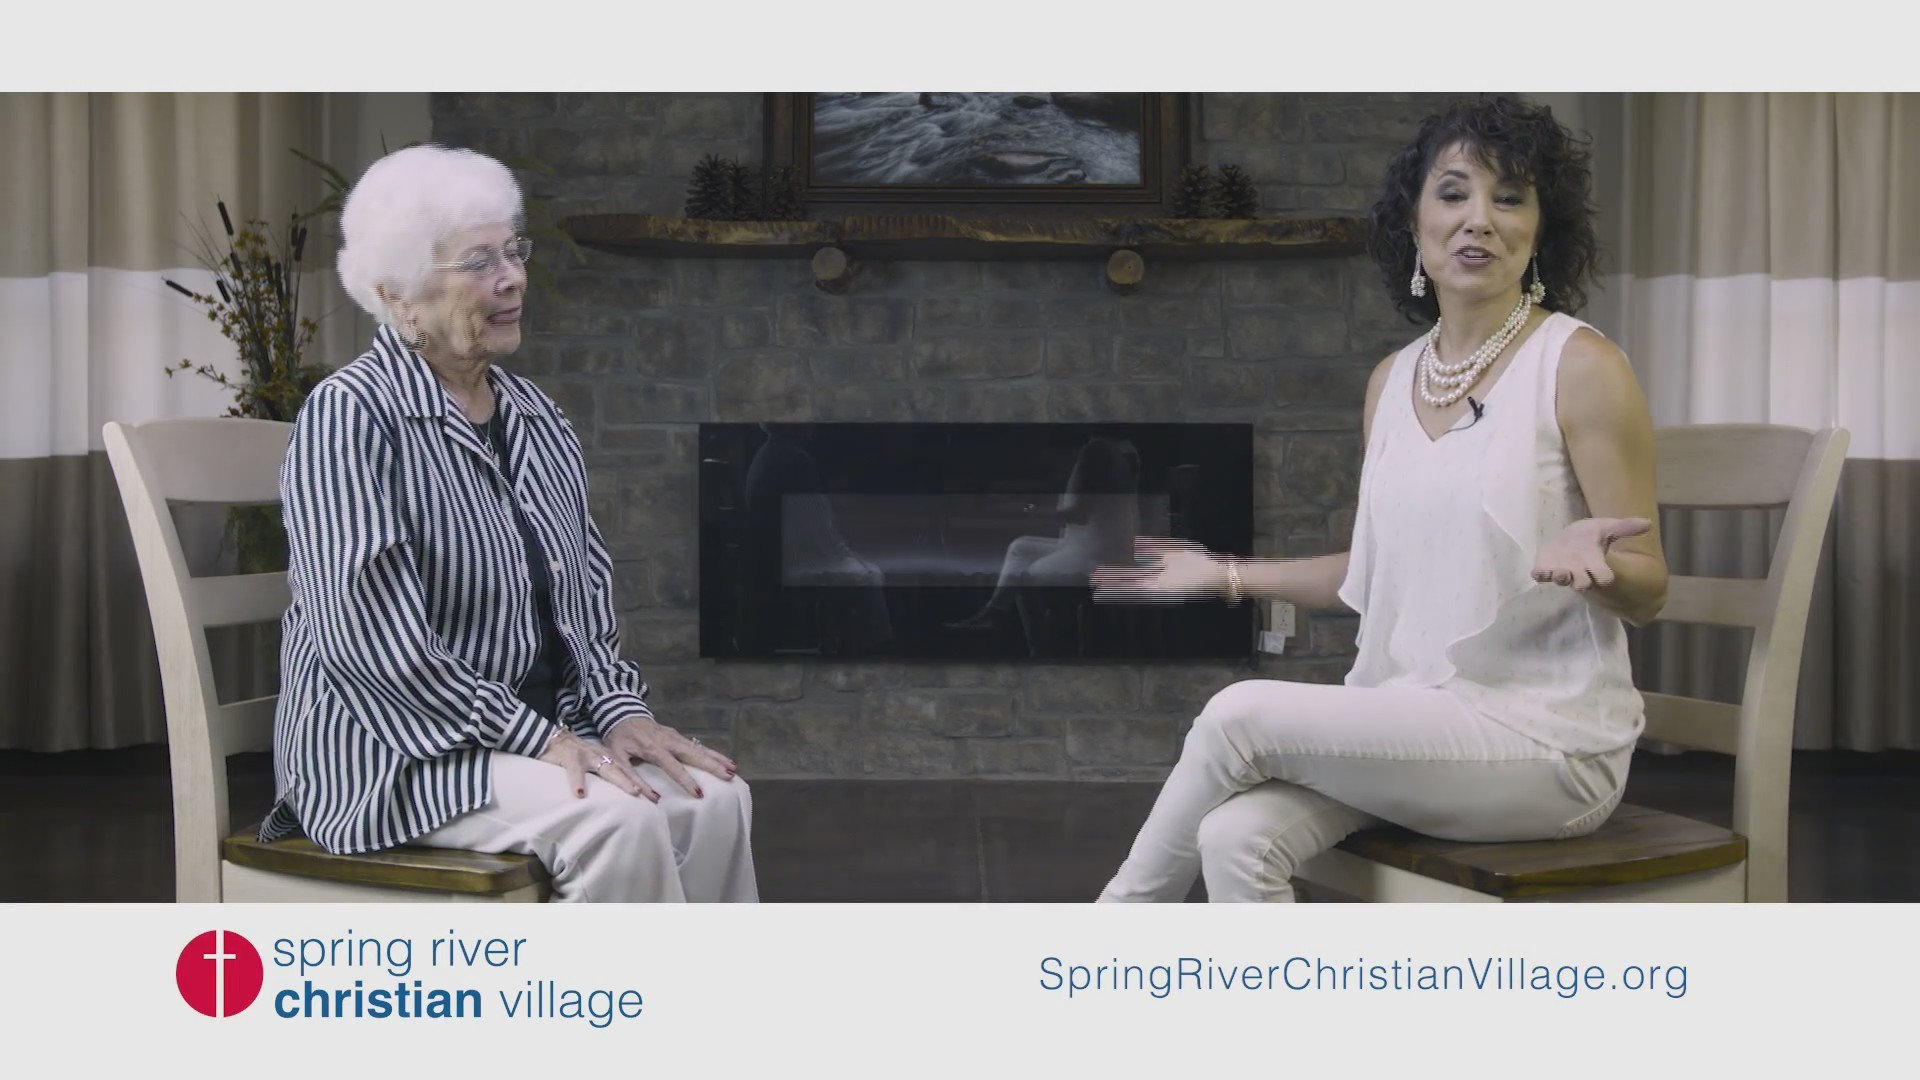 Spring River Christian Village - Sonya 1 (011719)